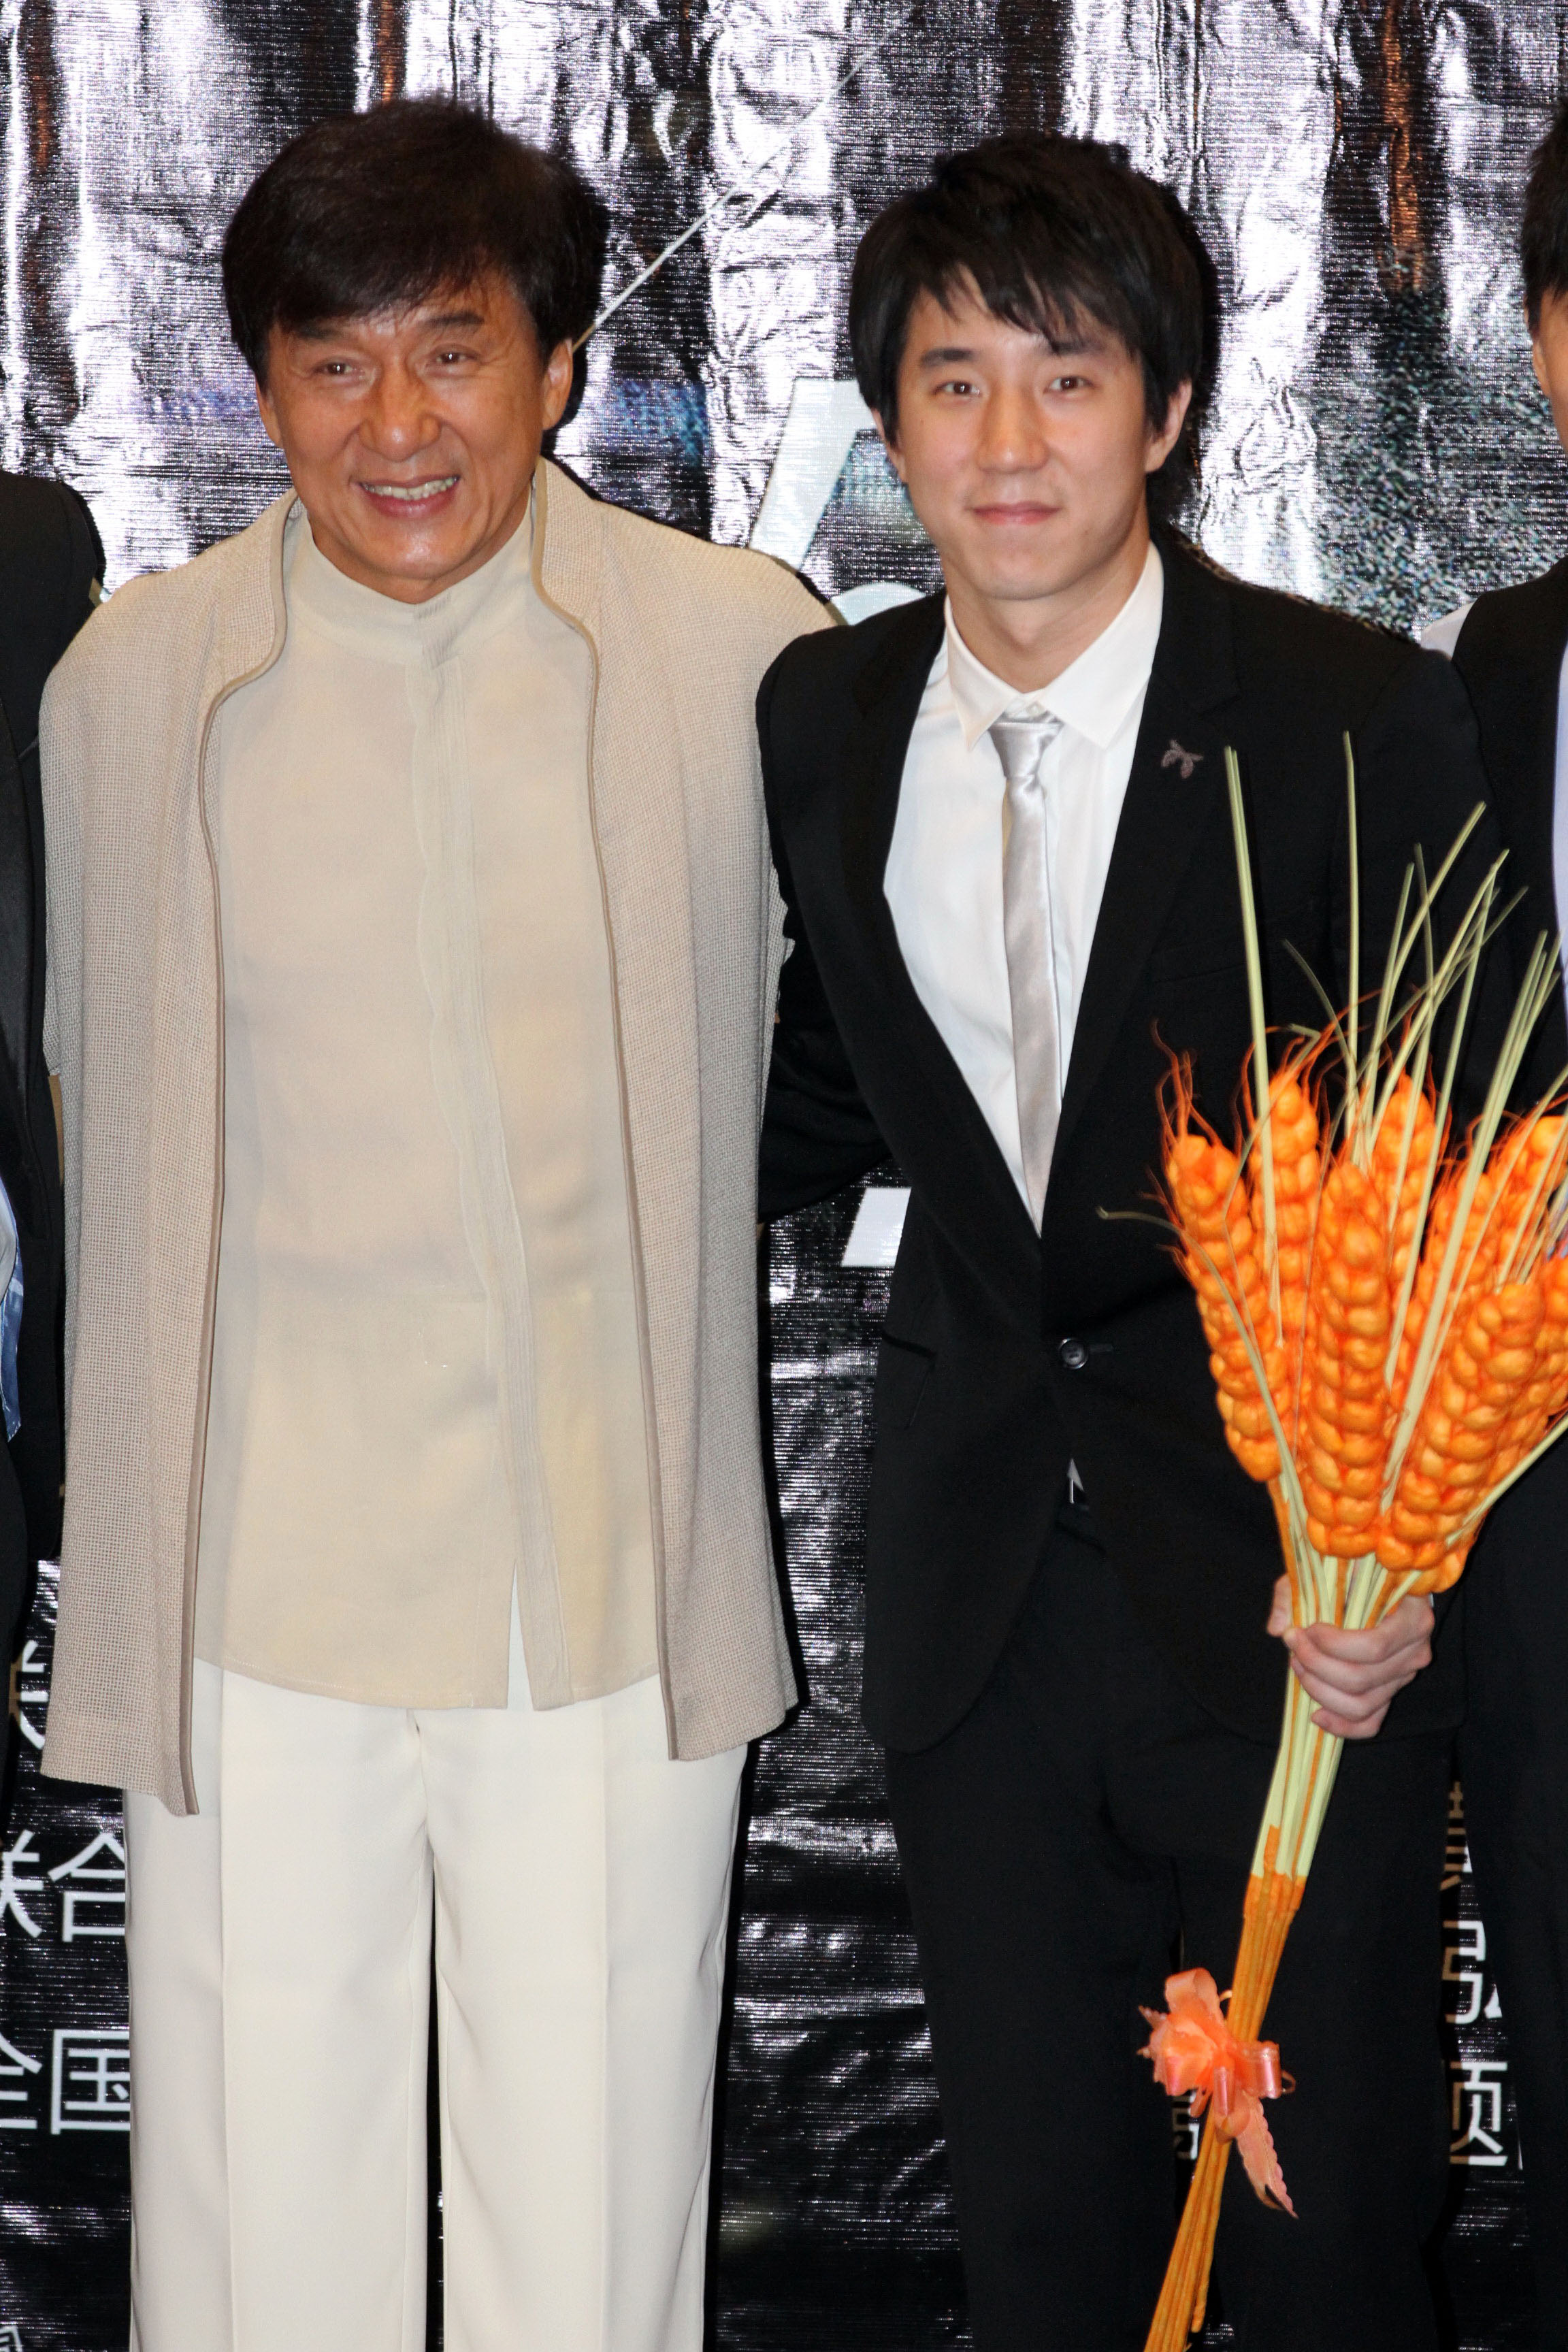 Actor Jackie Chan and his actor-singer son Jaycee Chan attend  Double Trouble  premiere at Jackie Chan Yaolai International Cinema on June 5, 2012 in Beijing.